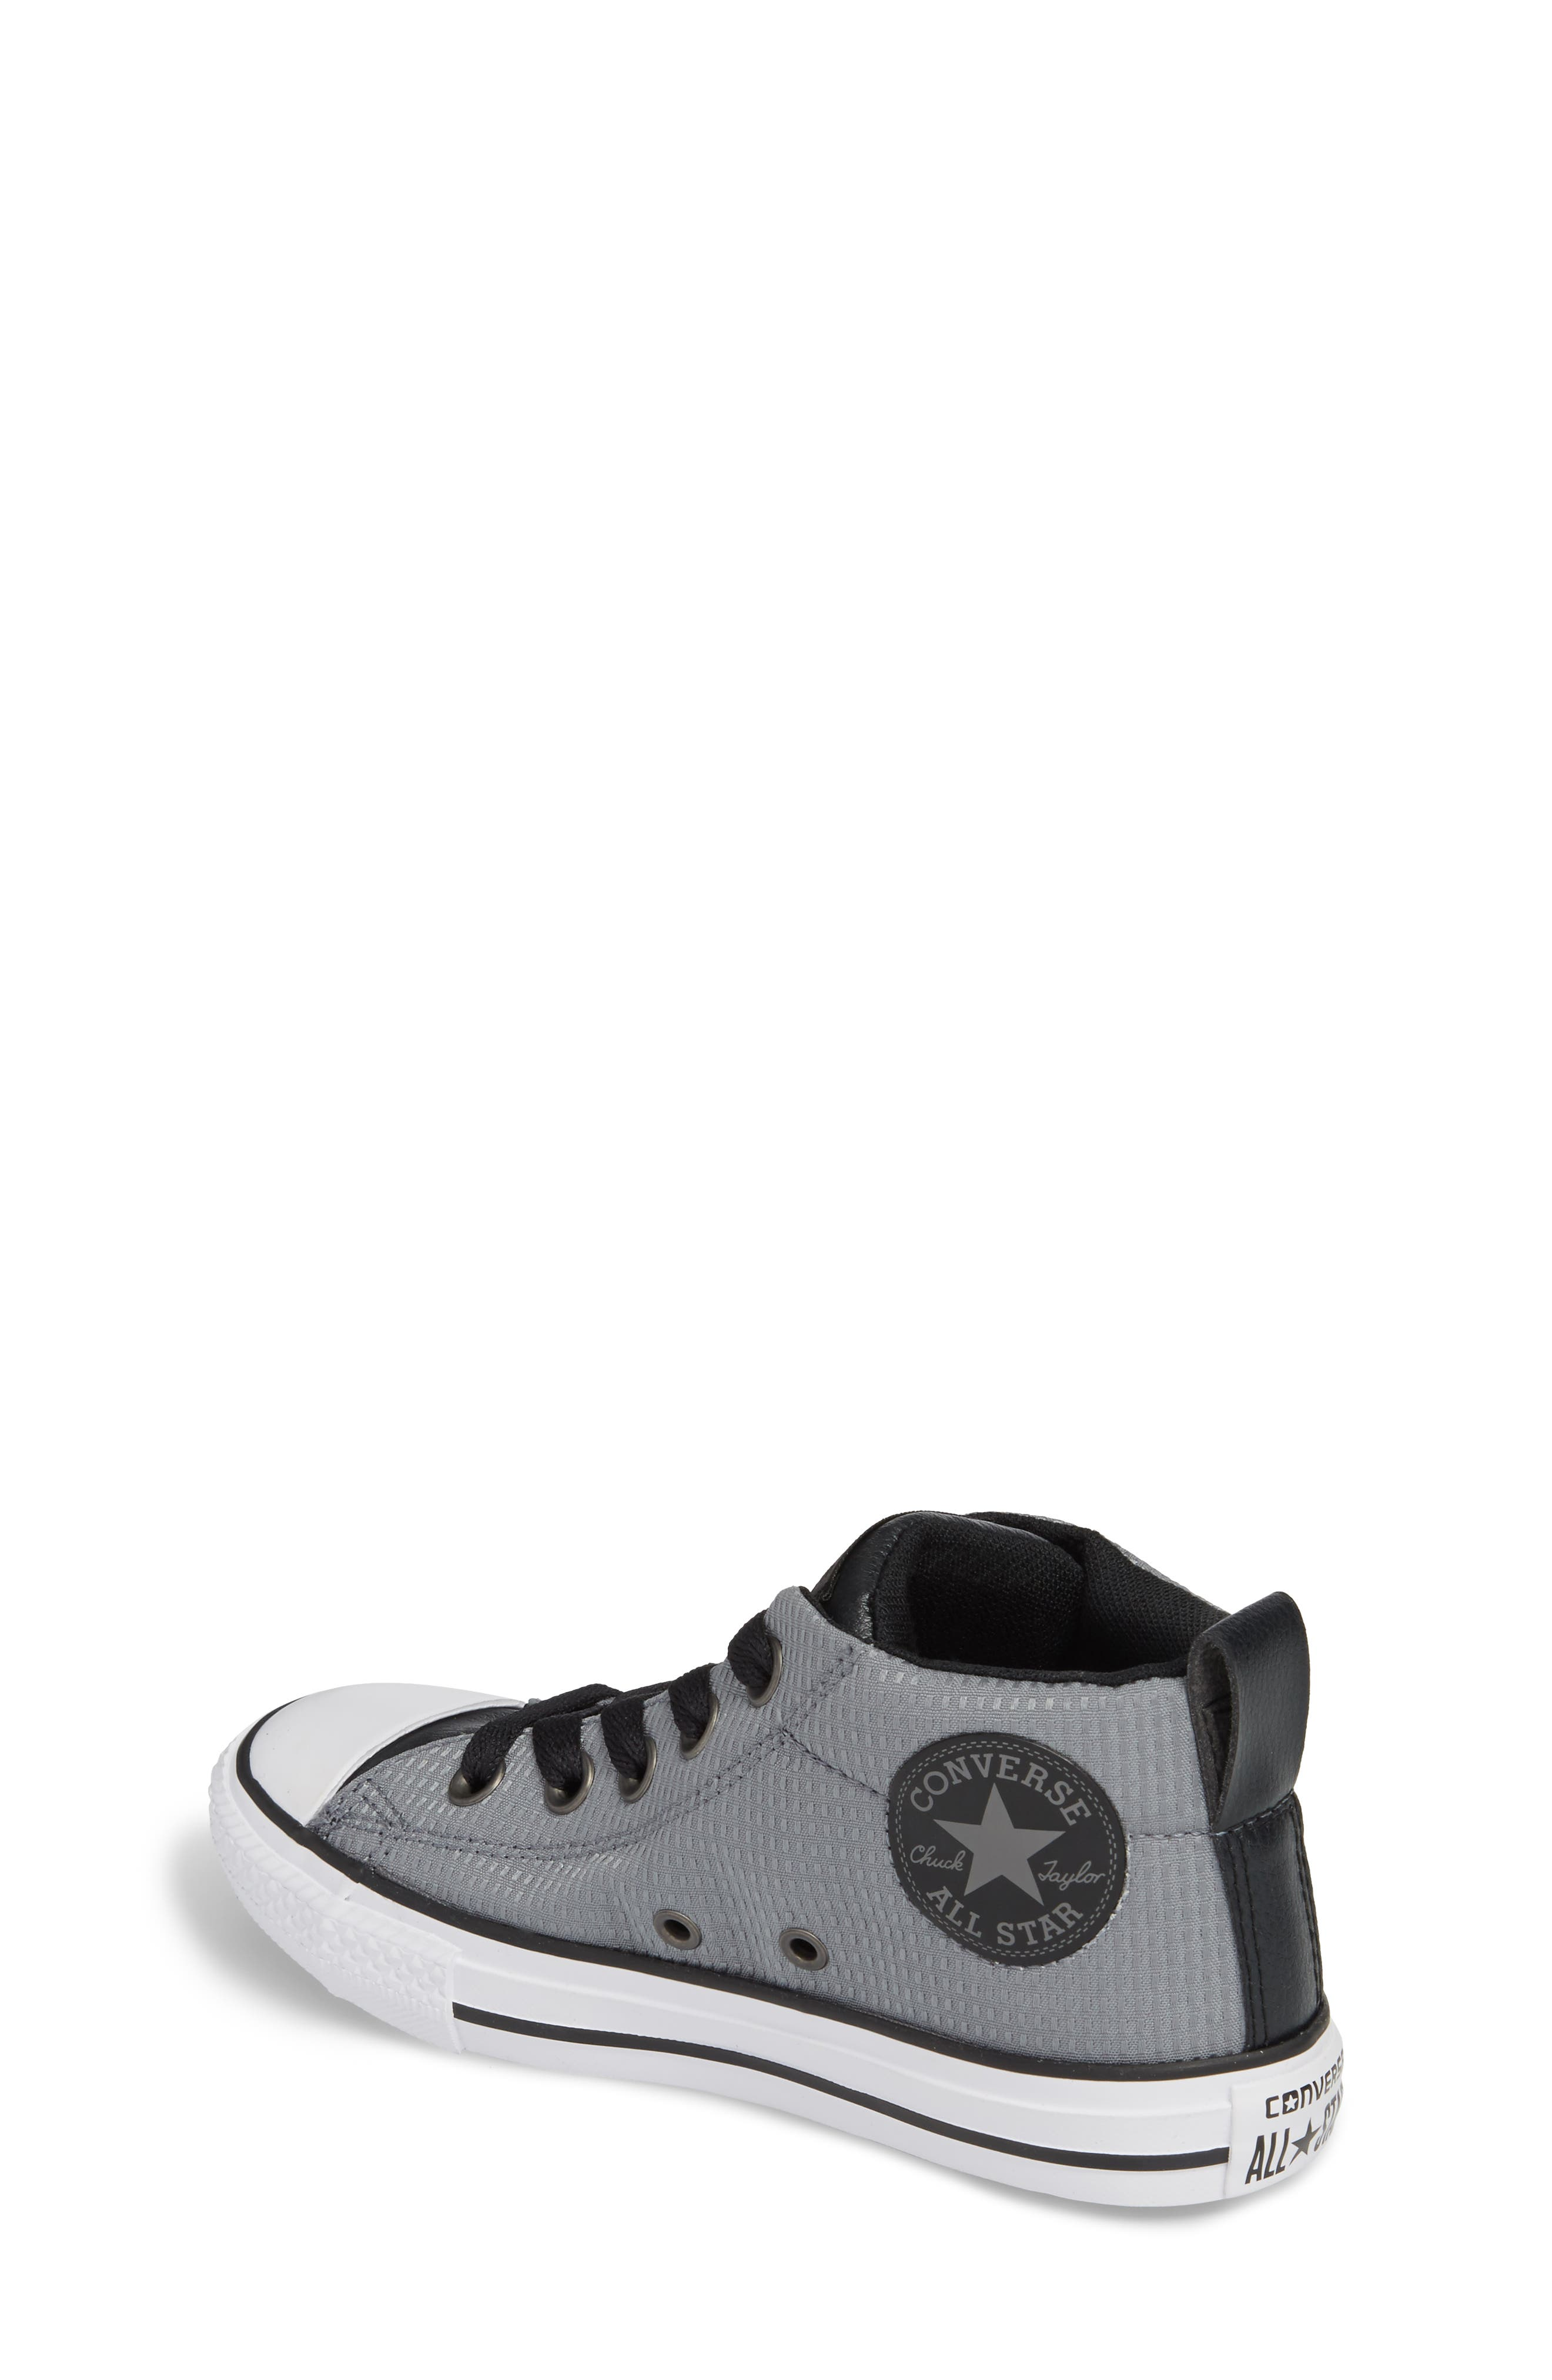 Chuck Taylor<sup>®</sup> All Star<sup>®</sup> Street Mid Backpack Sneaker,                             Alternate thumbnail 2, color,                             Cool Grey